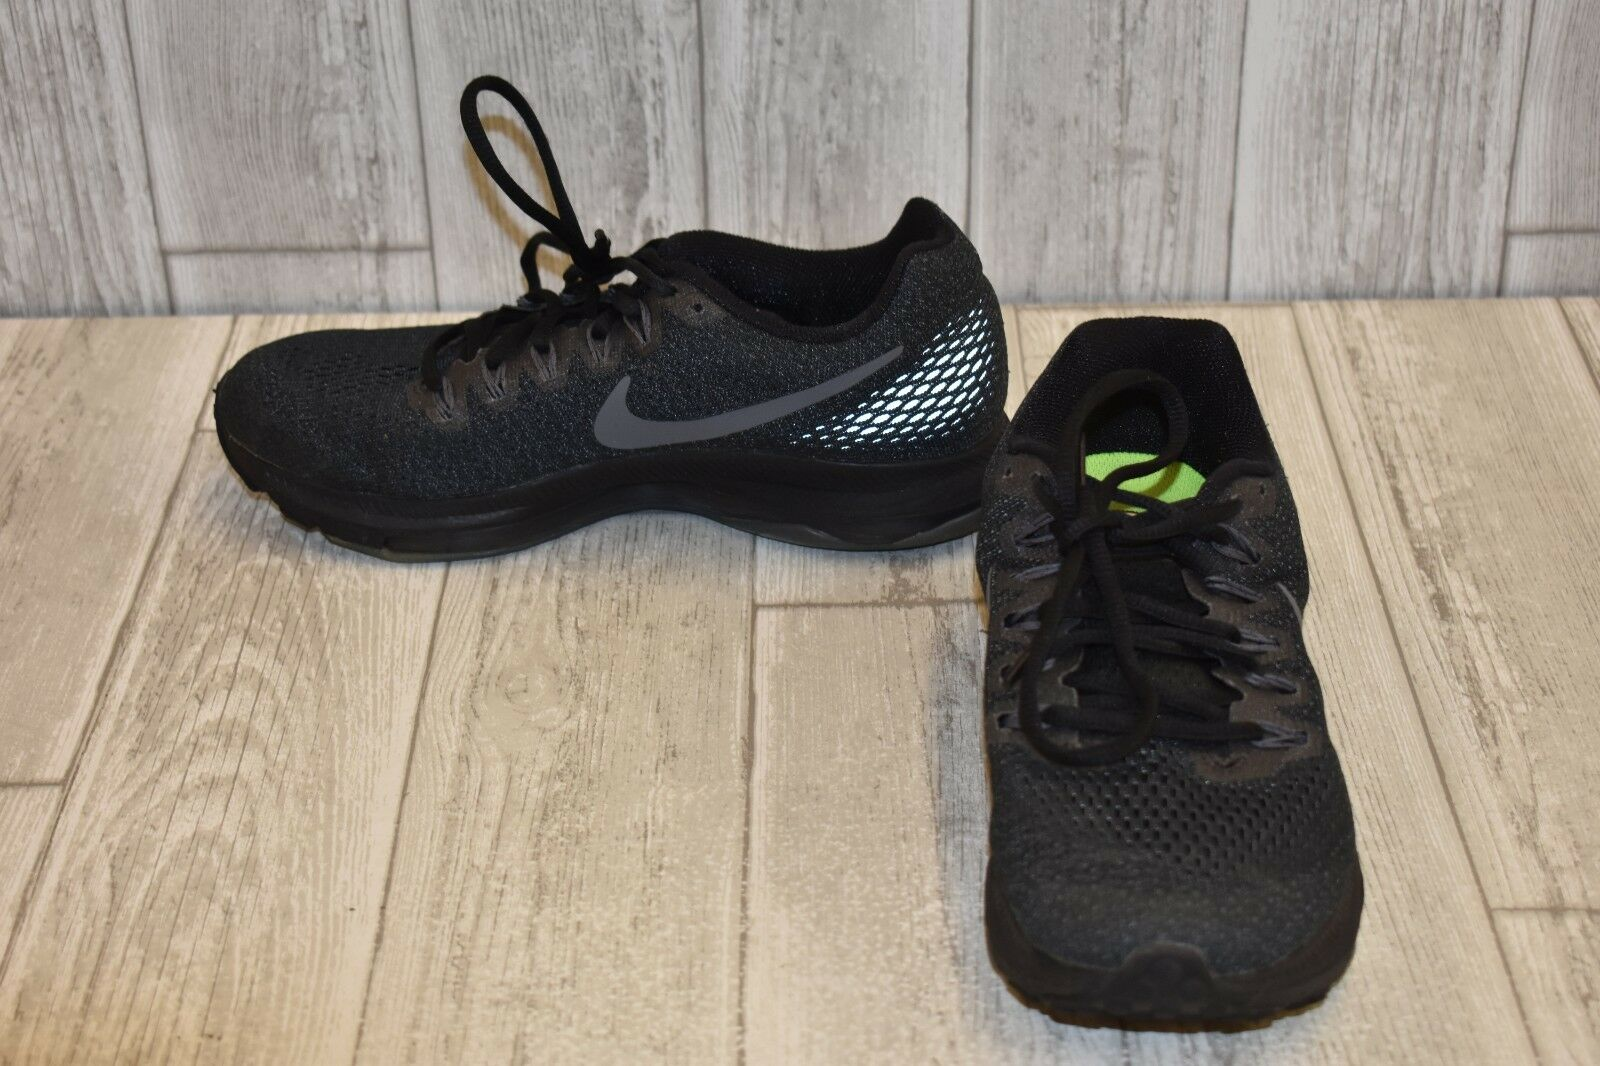 Nike- Zoom All Out Running shoes, Men's Size 7.5, Charcoal